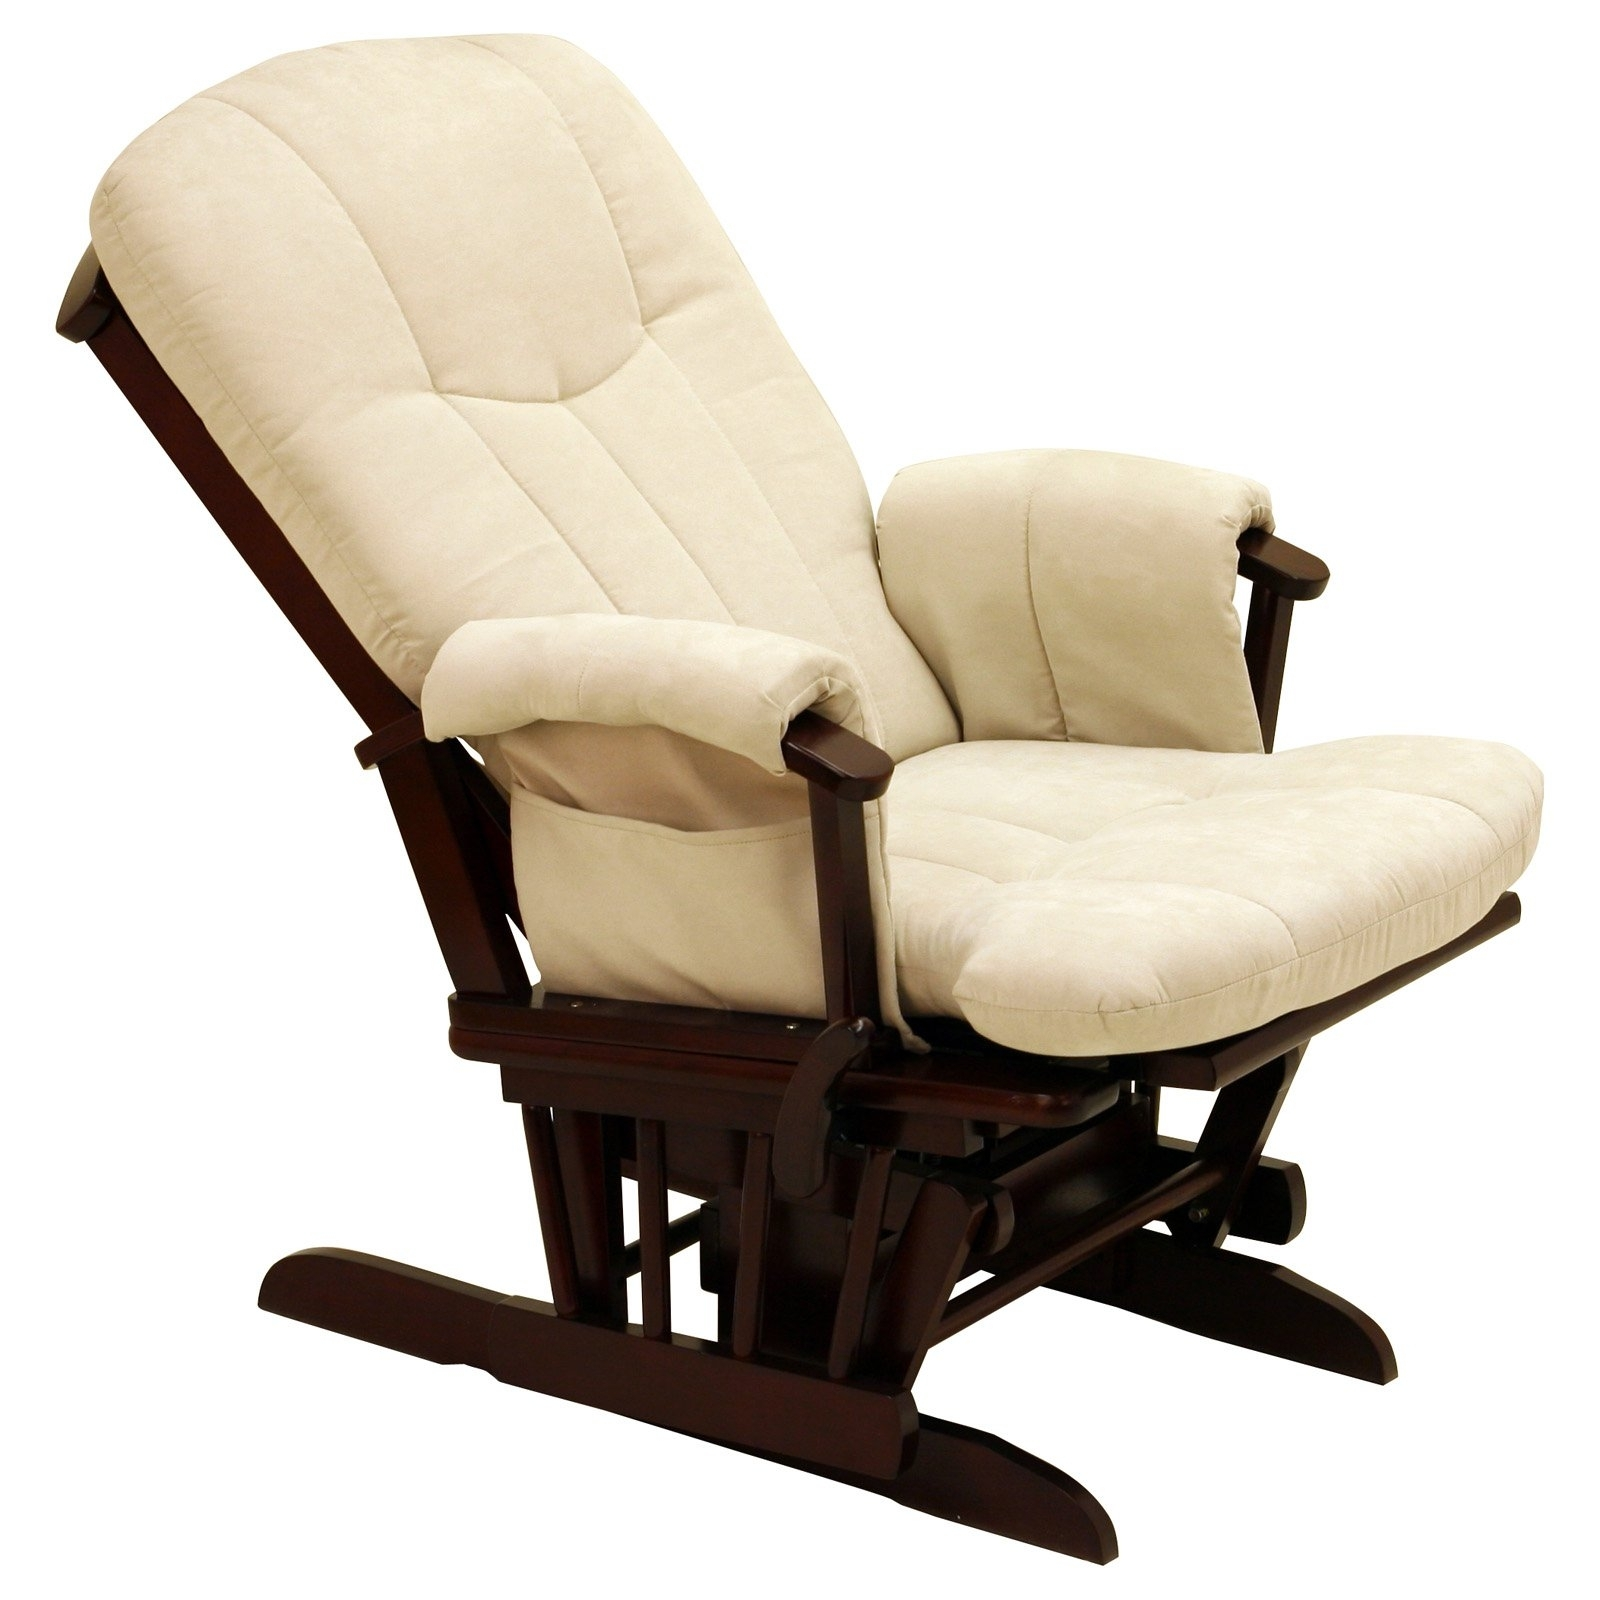 Fashionable Storkcraft Deluxe Reclining Glider Rocker – Cherry Beige – Walmart Intended For Rocking Chairs At Walmart (View 15 of 20)